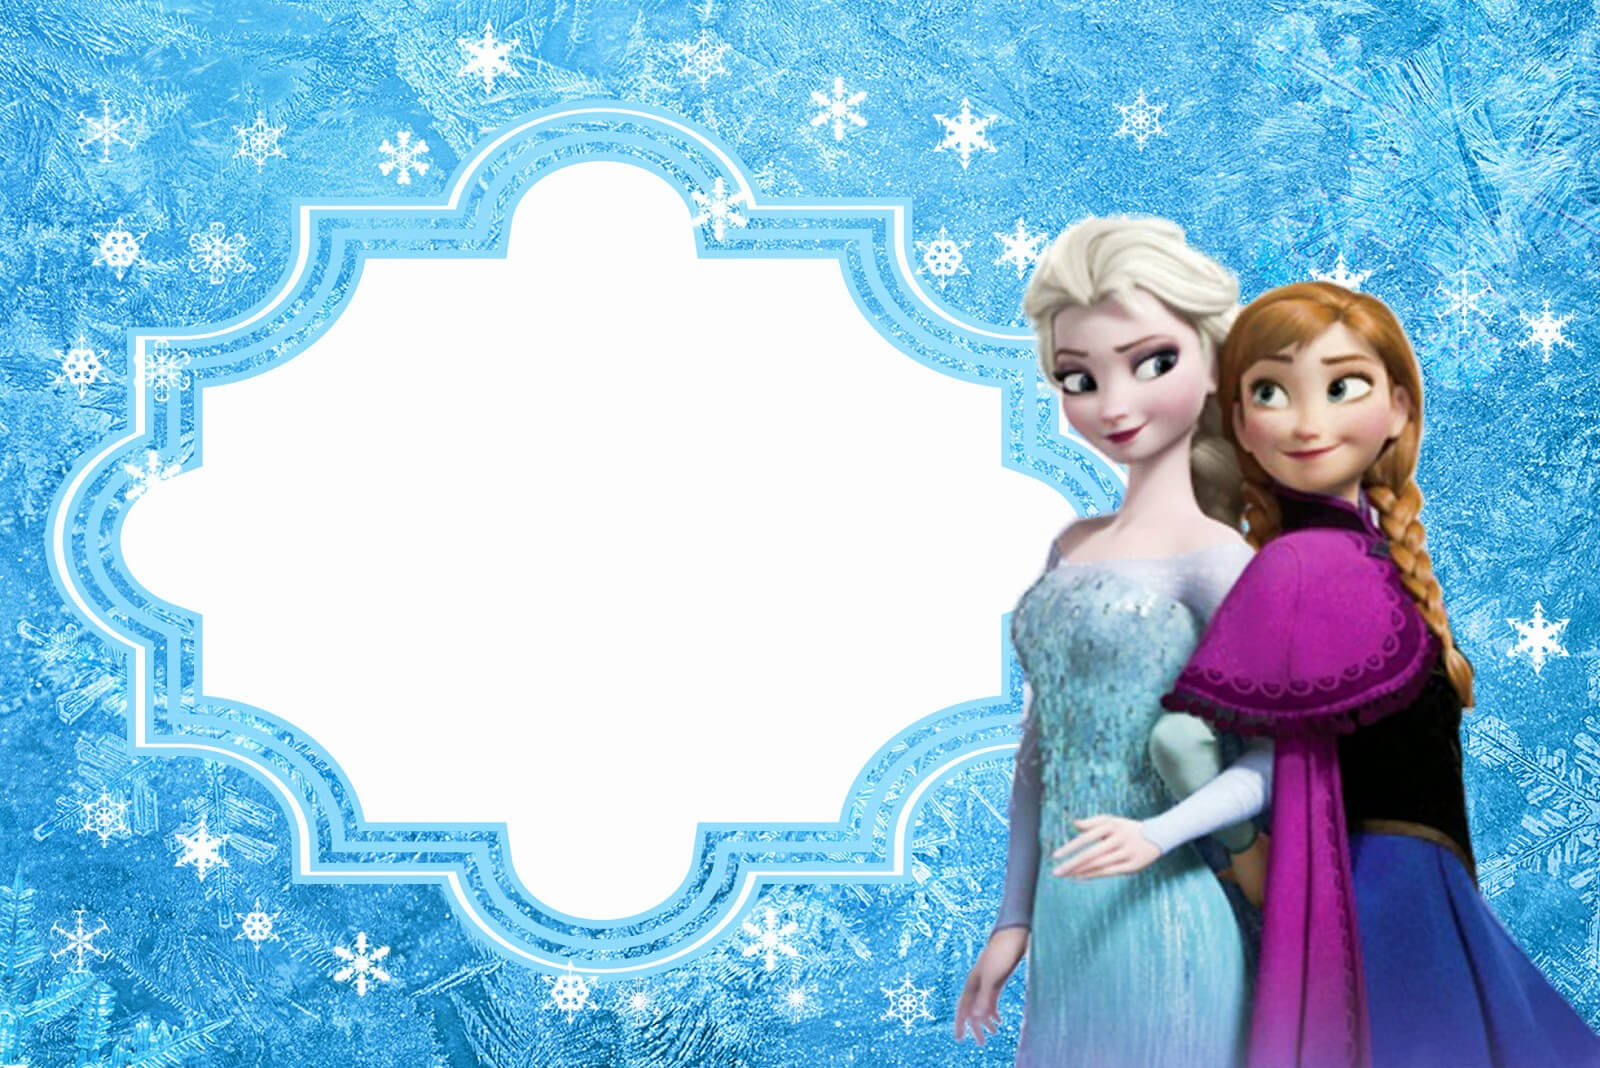 Frozen: Free Printable Cards Or Party Invitations. - Oh My in Frozen Birthday Card Template